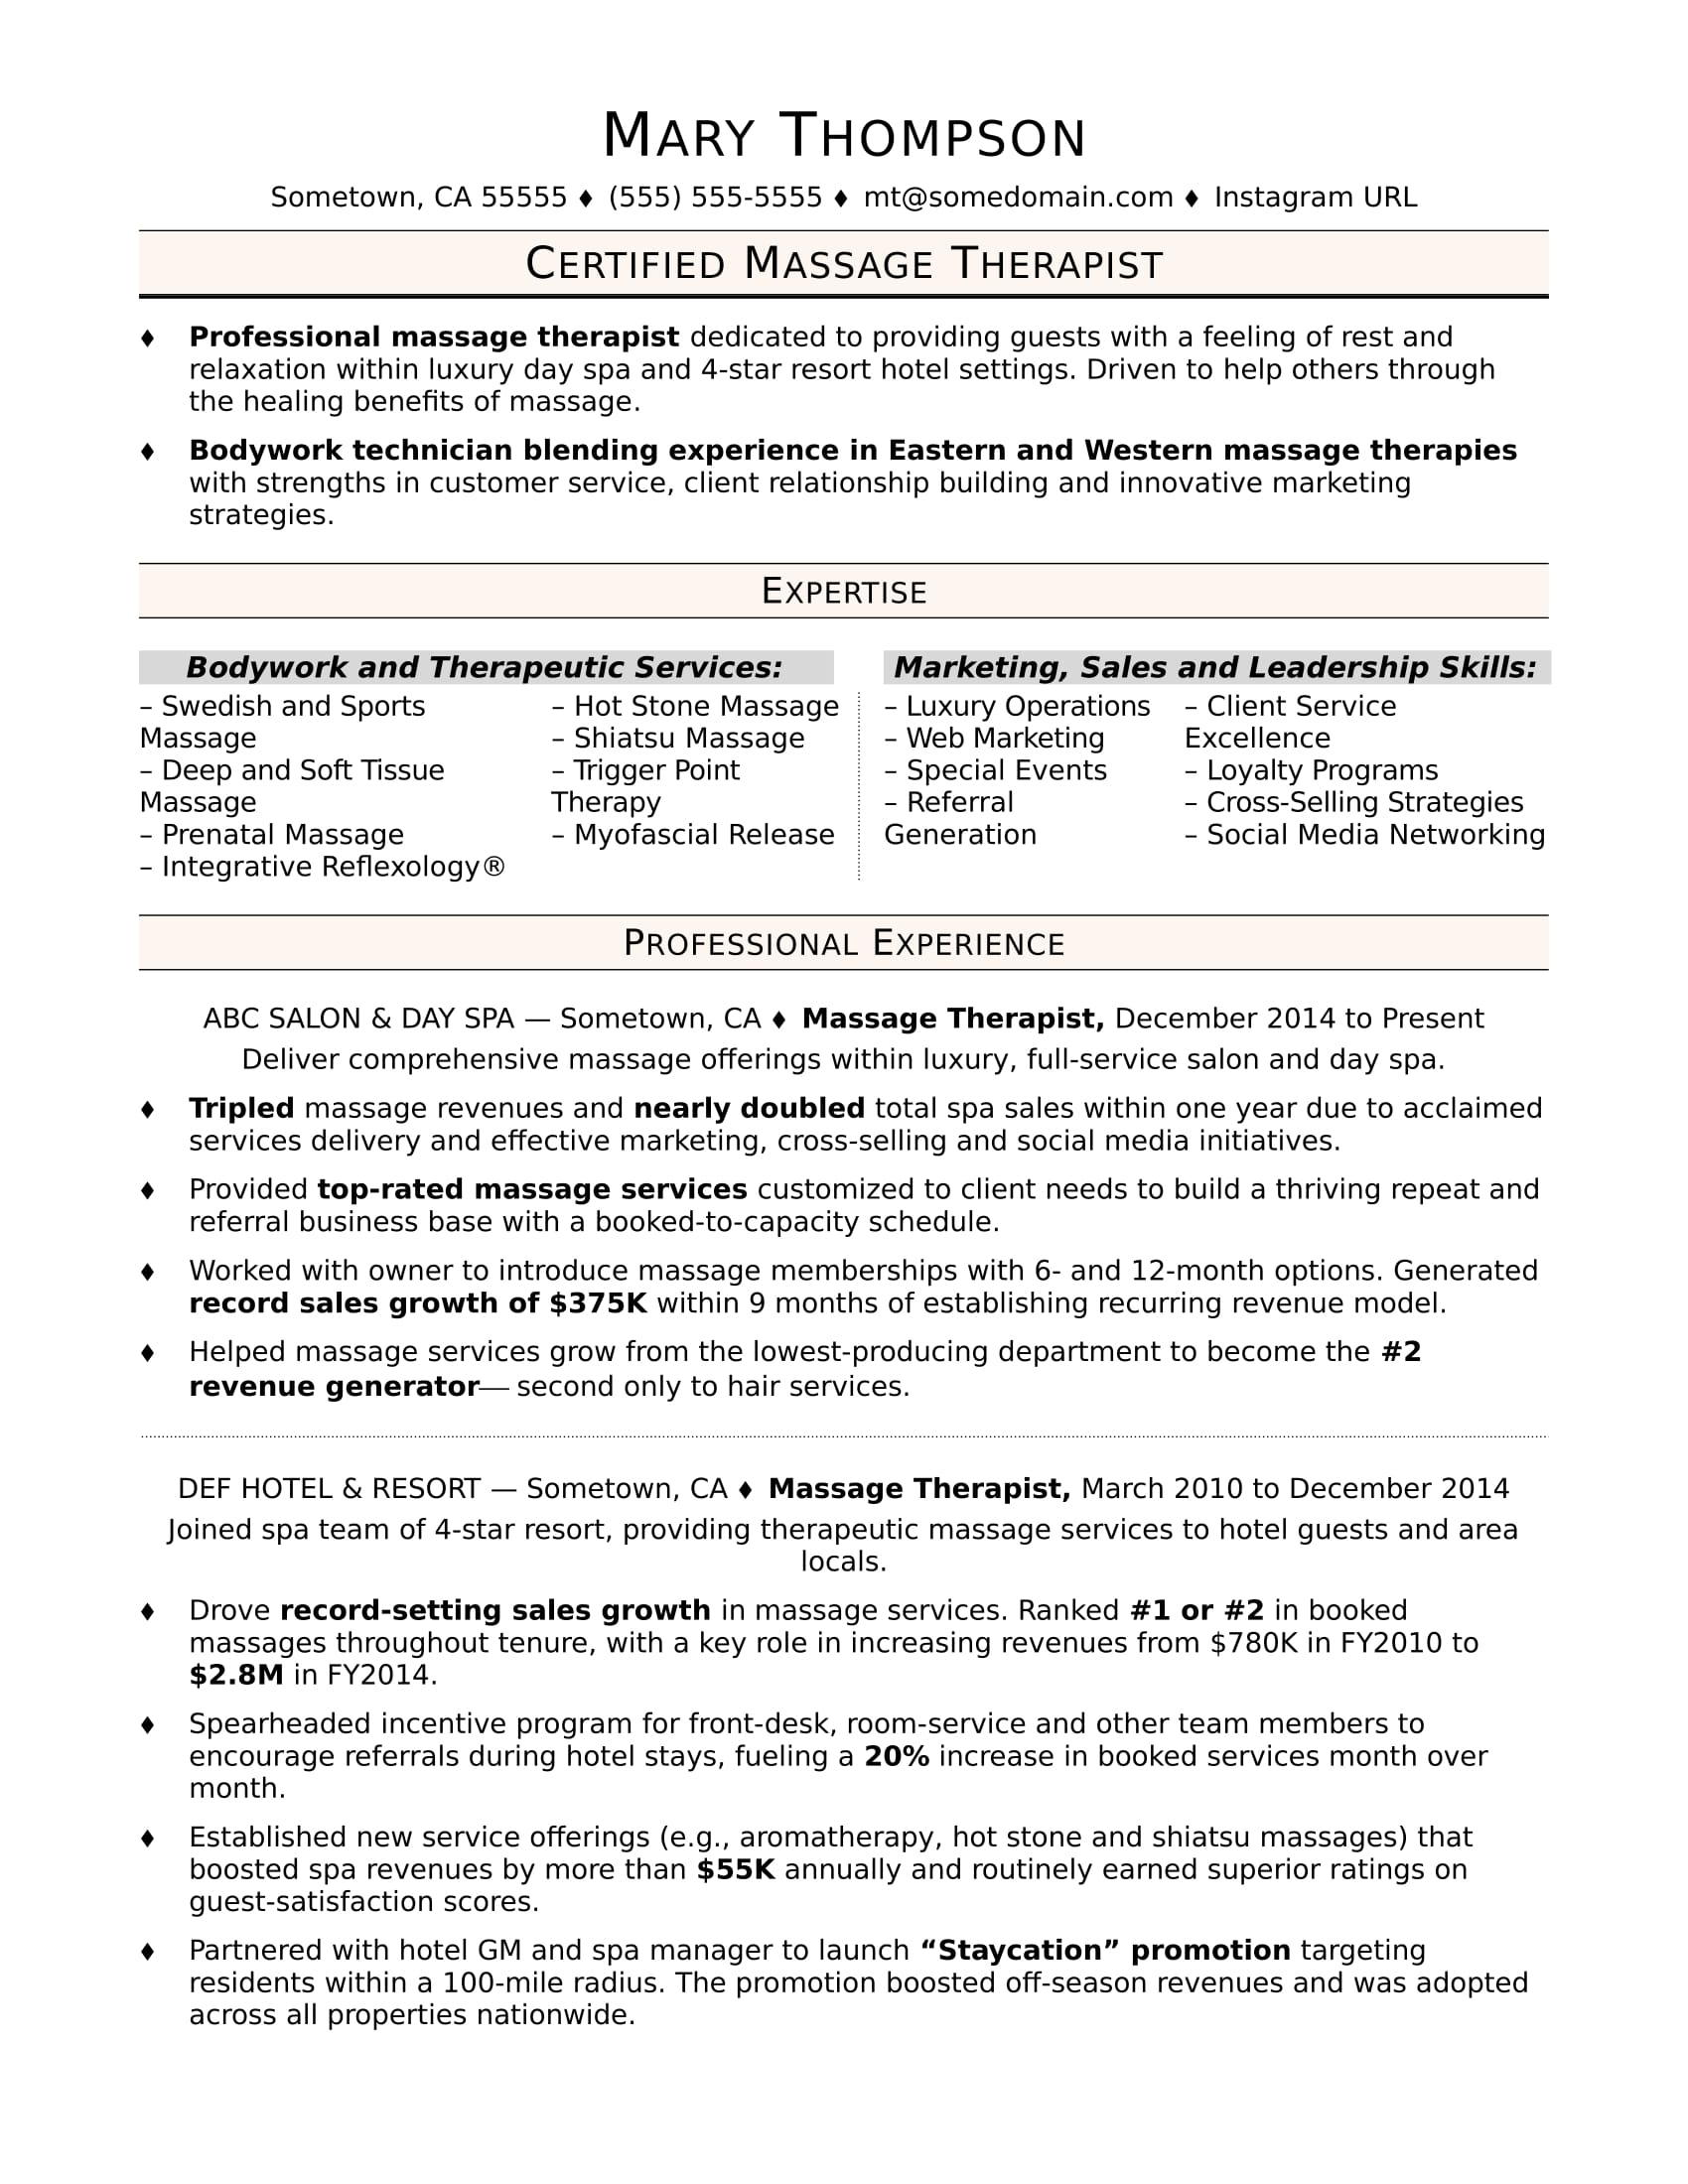 Massage Therapist Resume Sample Monster